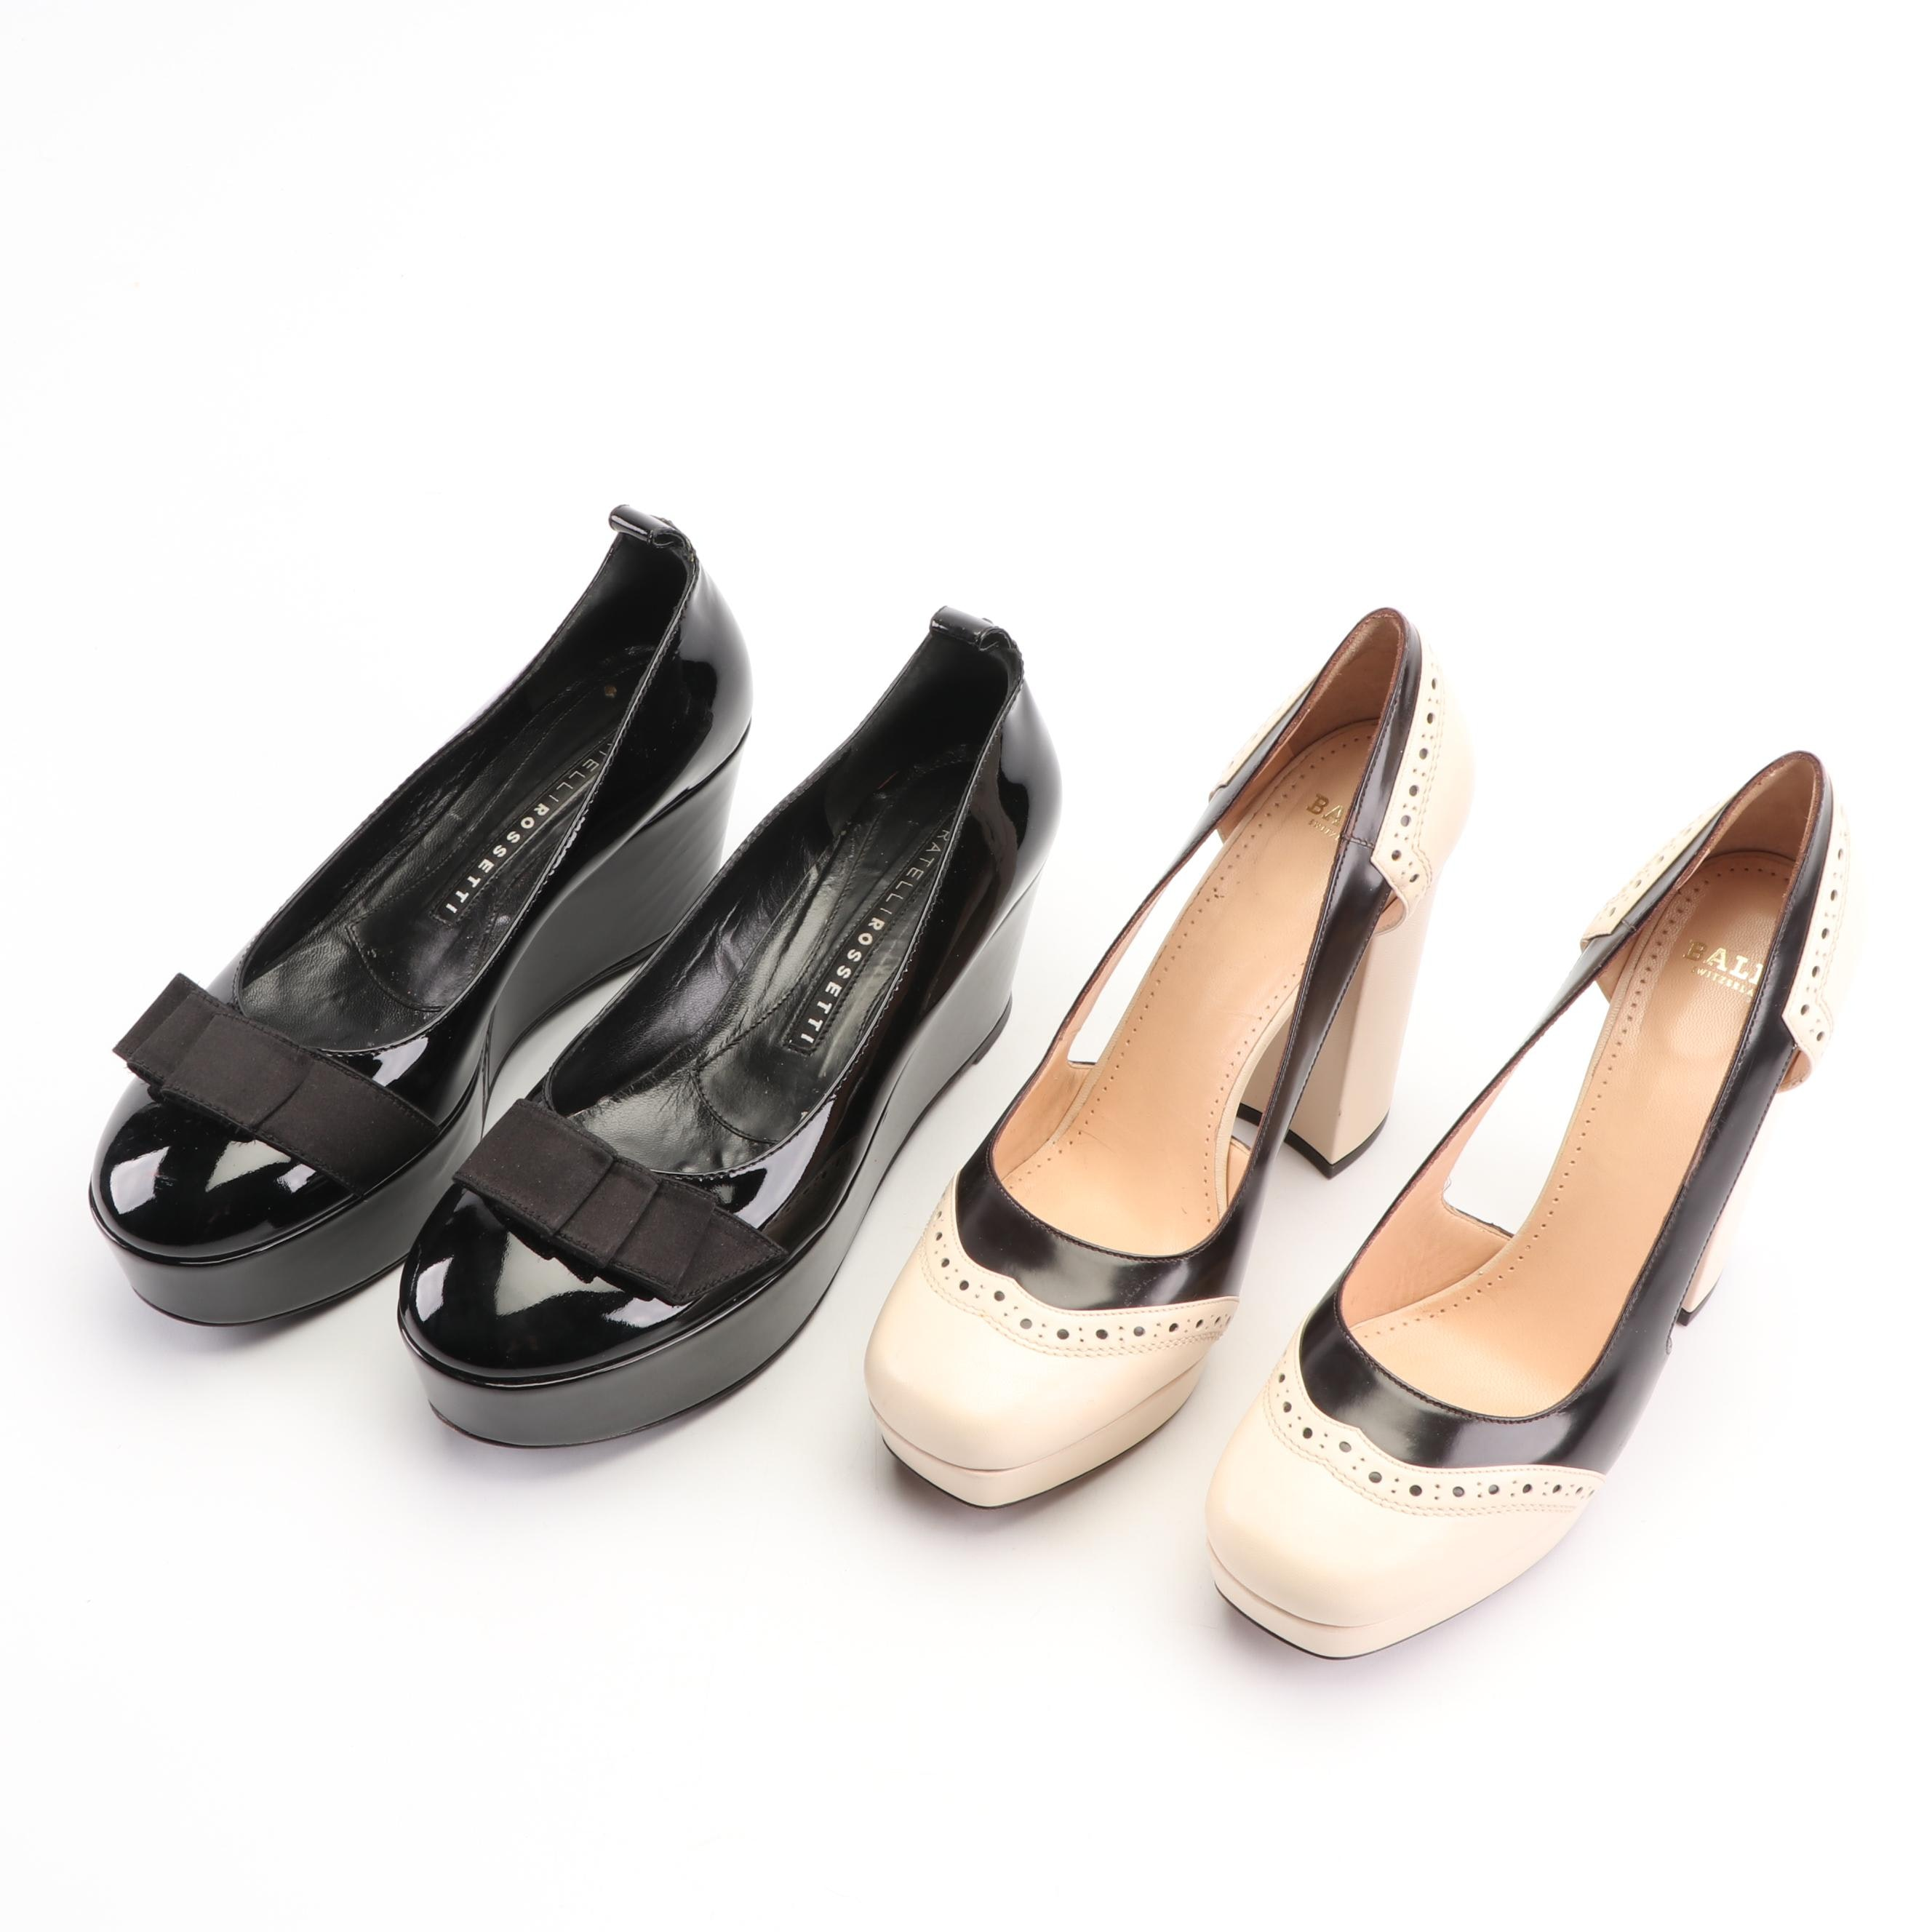 Fratelli Rossetti Patent Leather Wedges and Bally Leather Pumps, Made in Italy